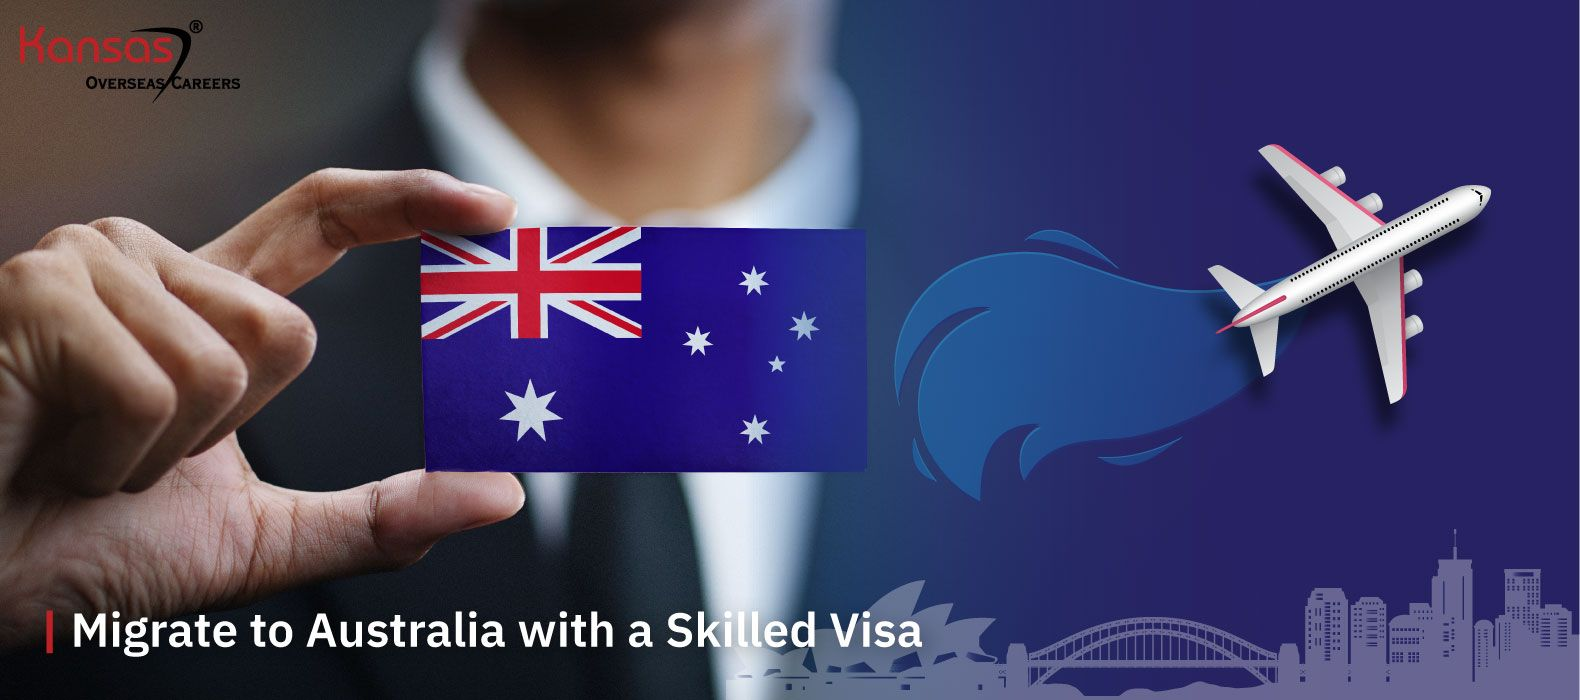 _-Migrate-to-Australia-with-a-Skilled-Visa